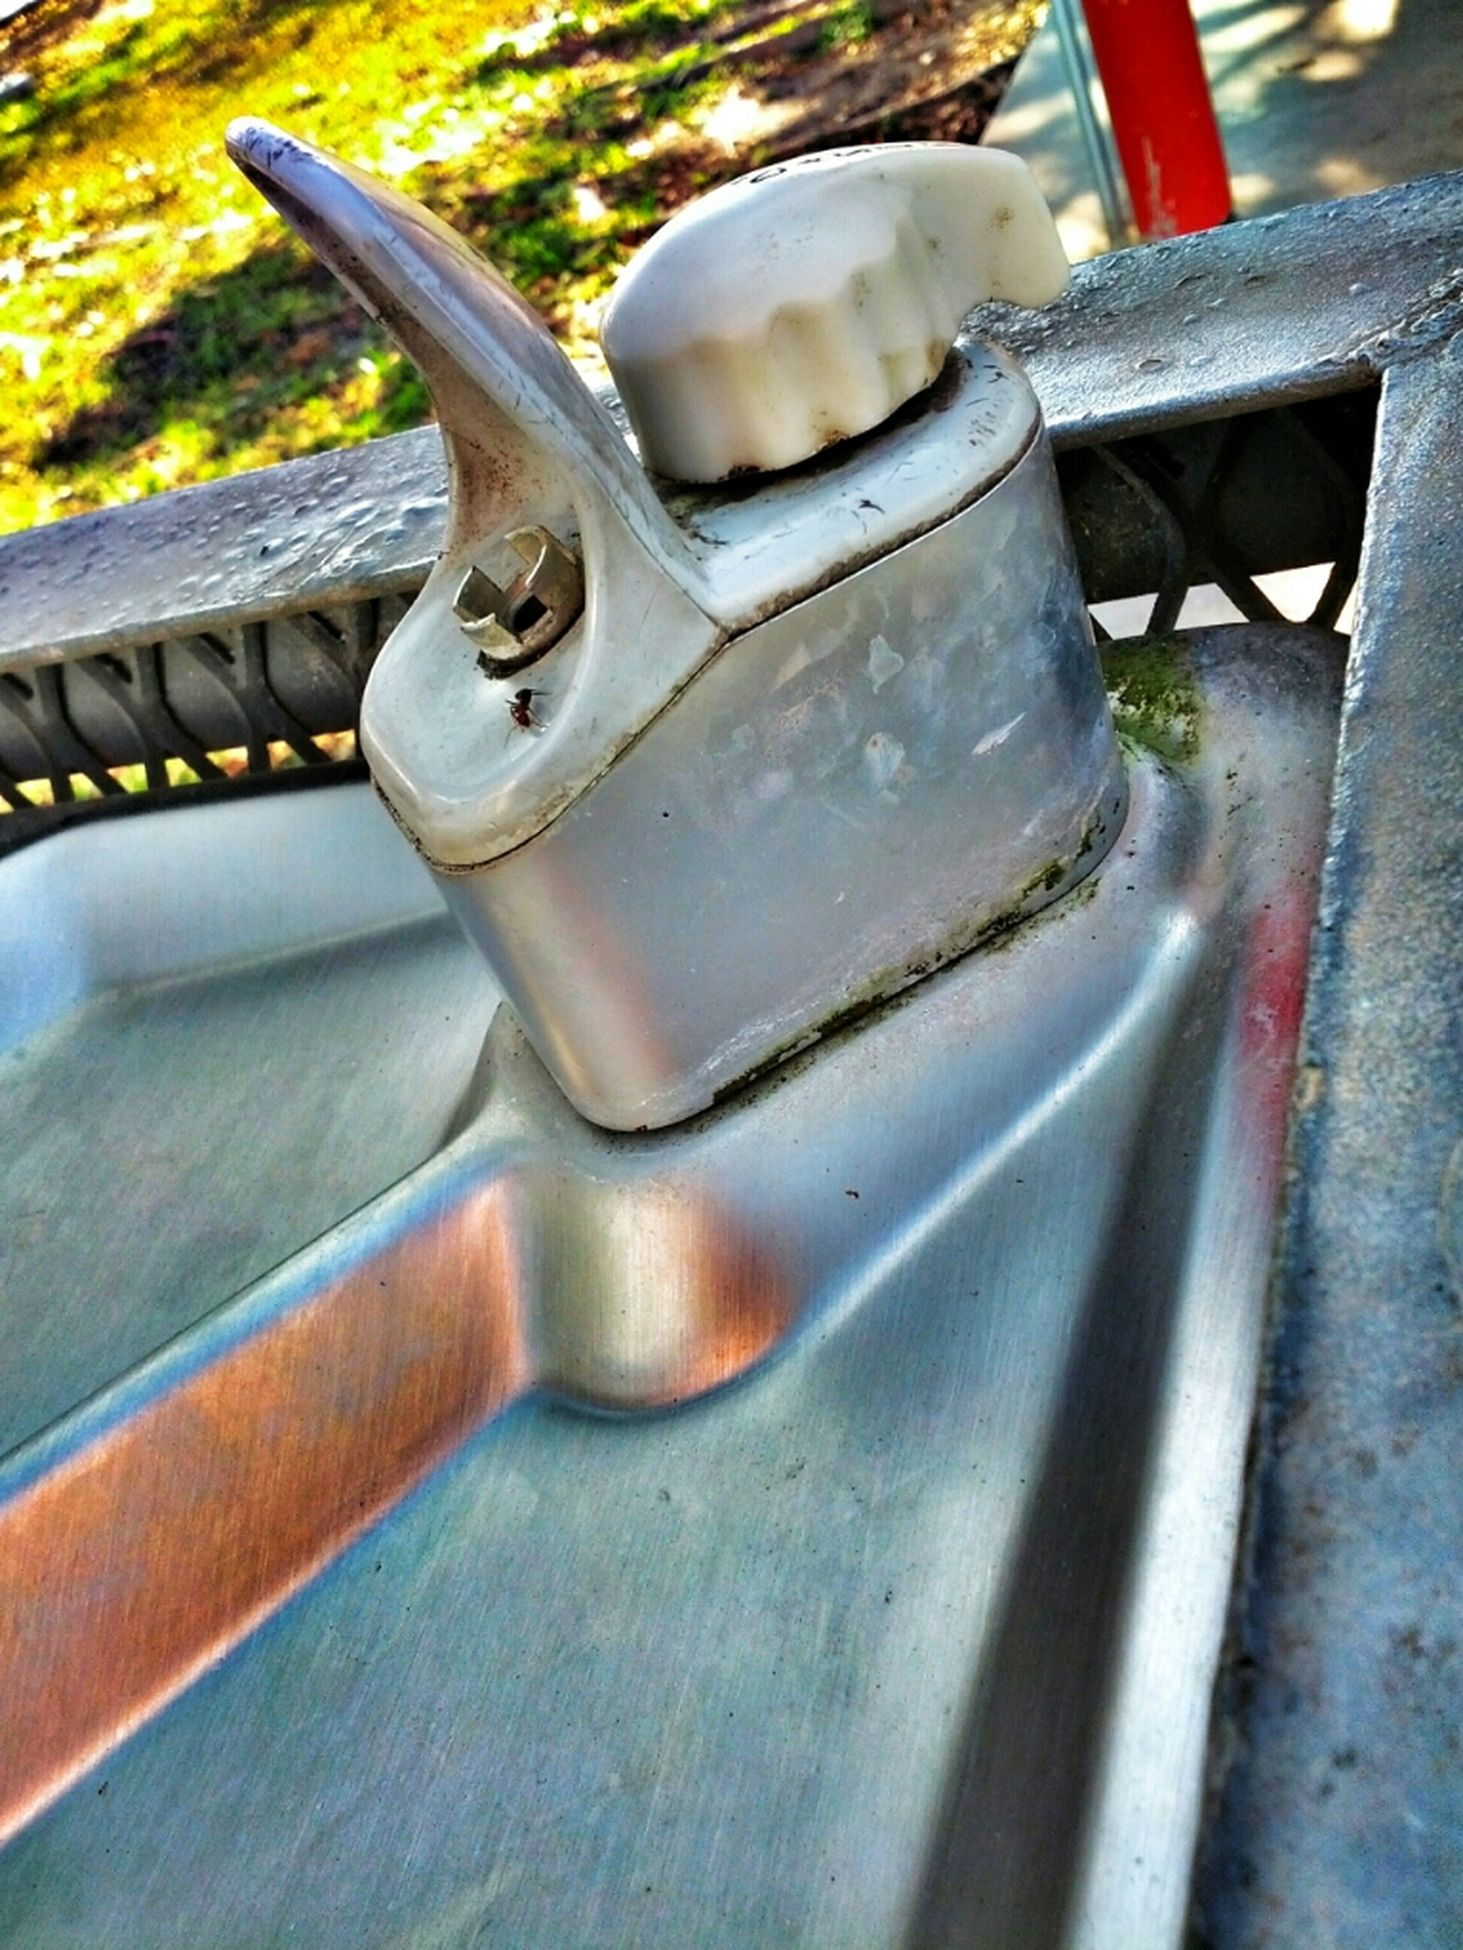 metal, close-up, metallic, focus on foreground, high angle view, railing, part of, day, no people, outdoors, protection, transportation, sunlight, cropped, mode of transport, safety, rusty, wood - material, chain, land vehicle